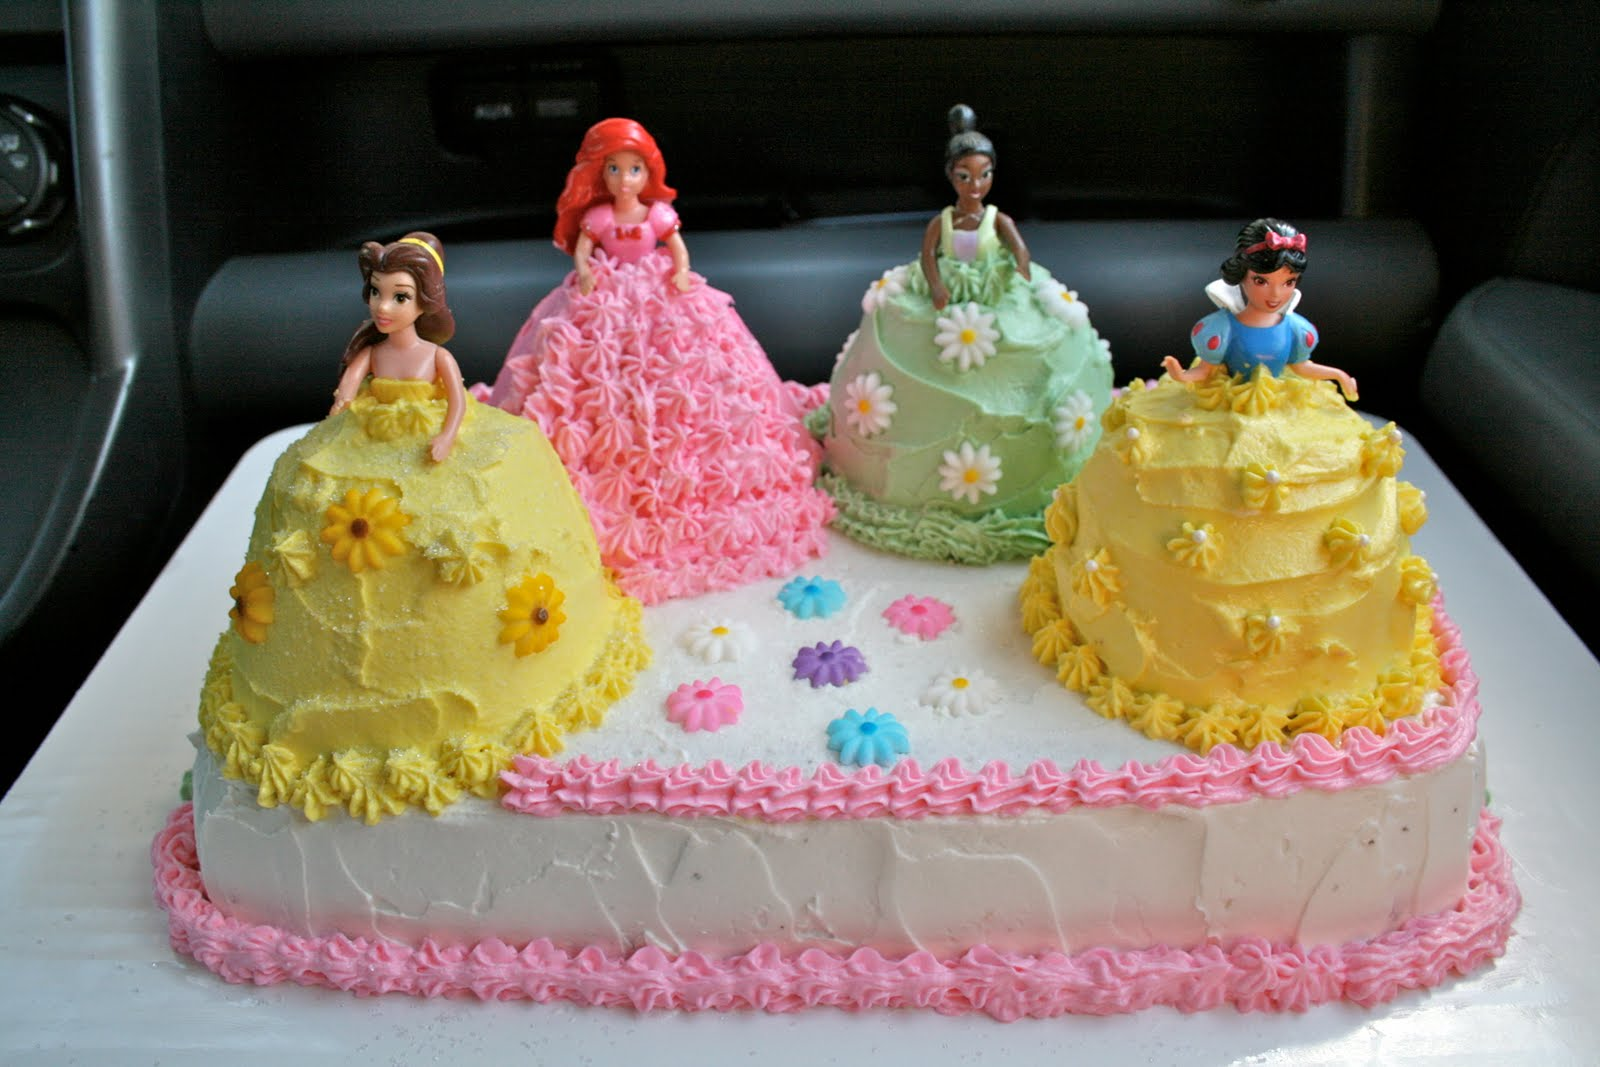 Birthday Cake Pictures Of Princess : Bake - a - holic: Princess Cake